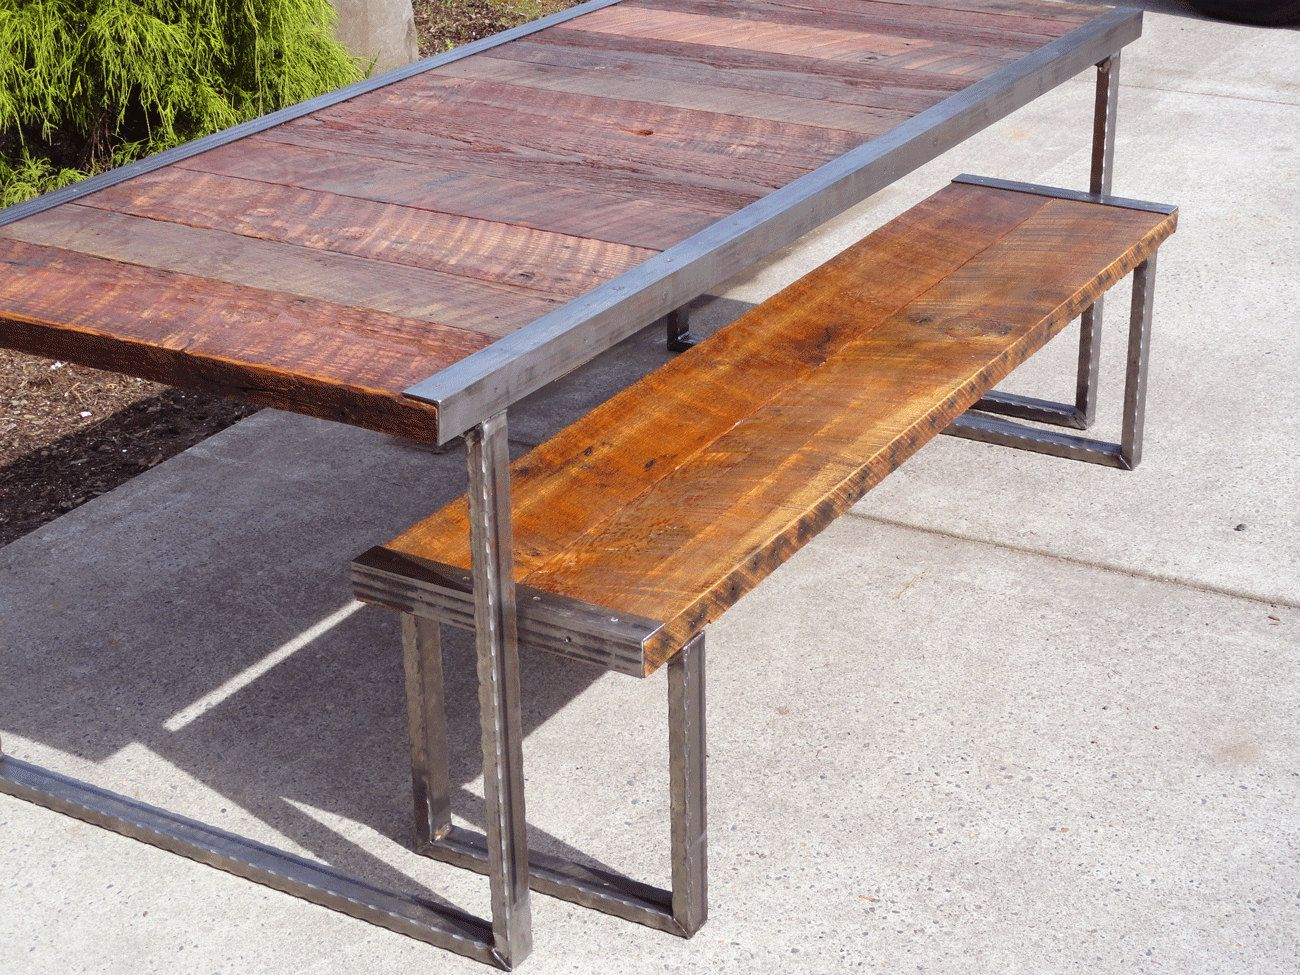 industrial kitchen table 30 84 Industrial Dining Table with Raw Steel Square Legs 00 USD by